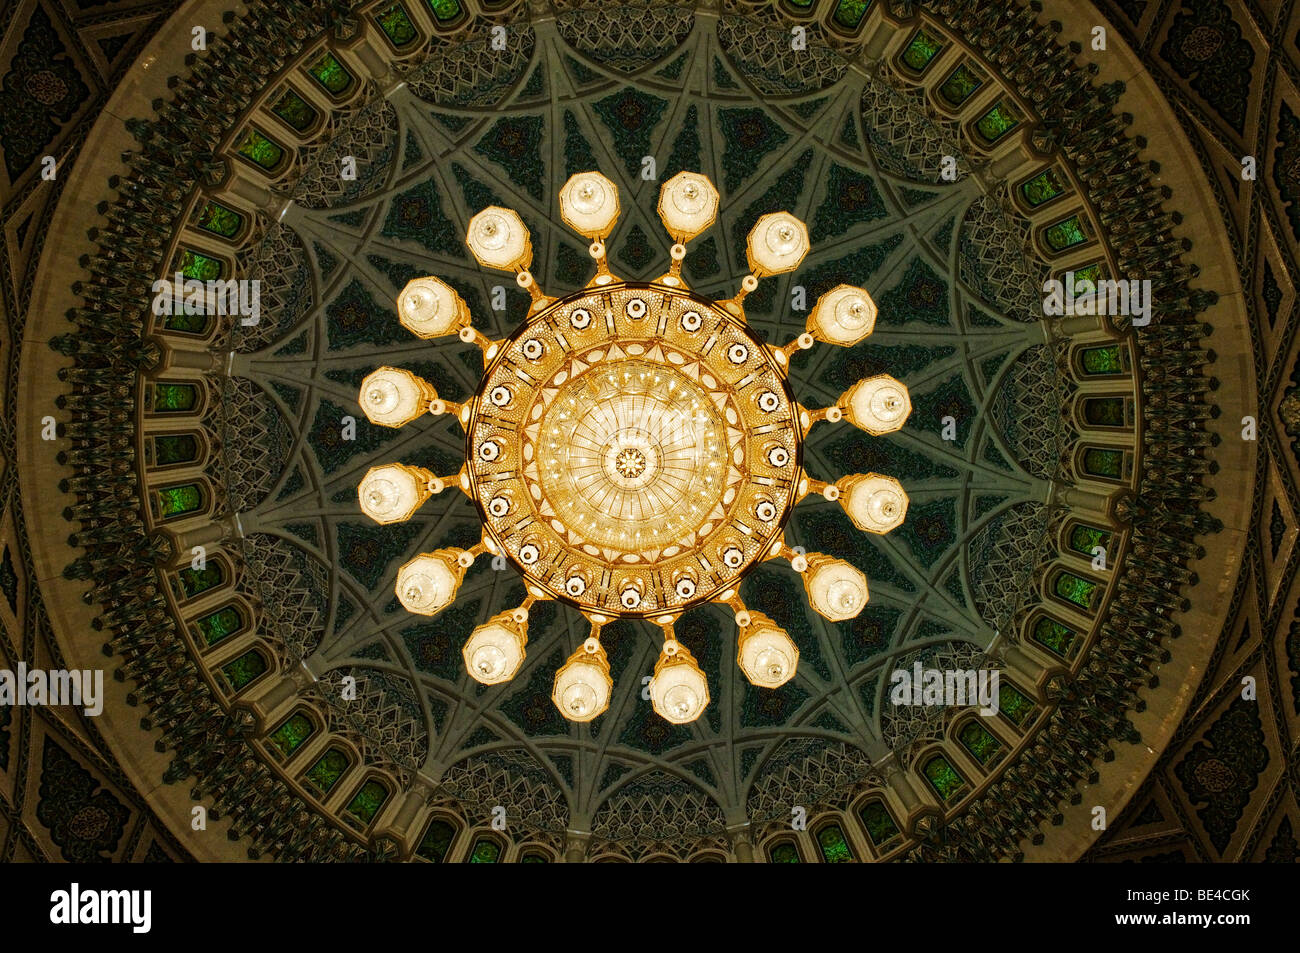 Huge chandelier in the central prayer hall at the Sultan Qaboos Grand Mosque, Muscat, Sultanate of Oman, Arabia, - Stock Image